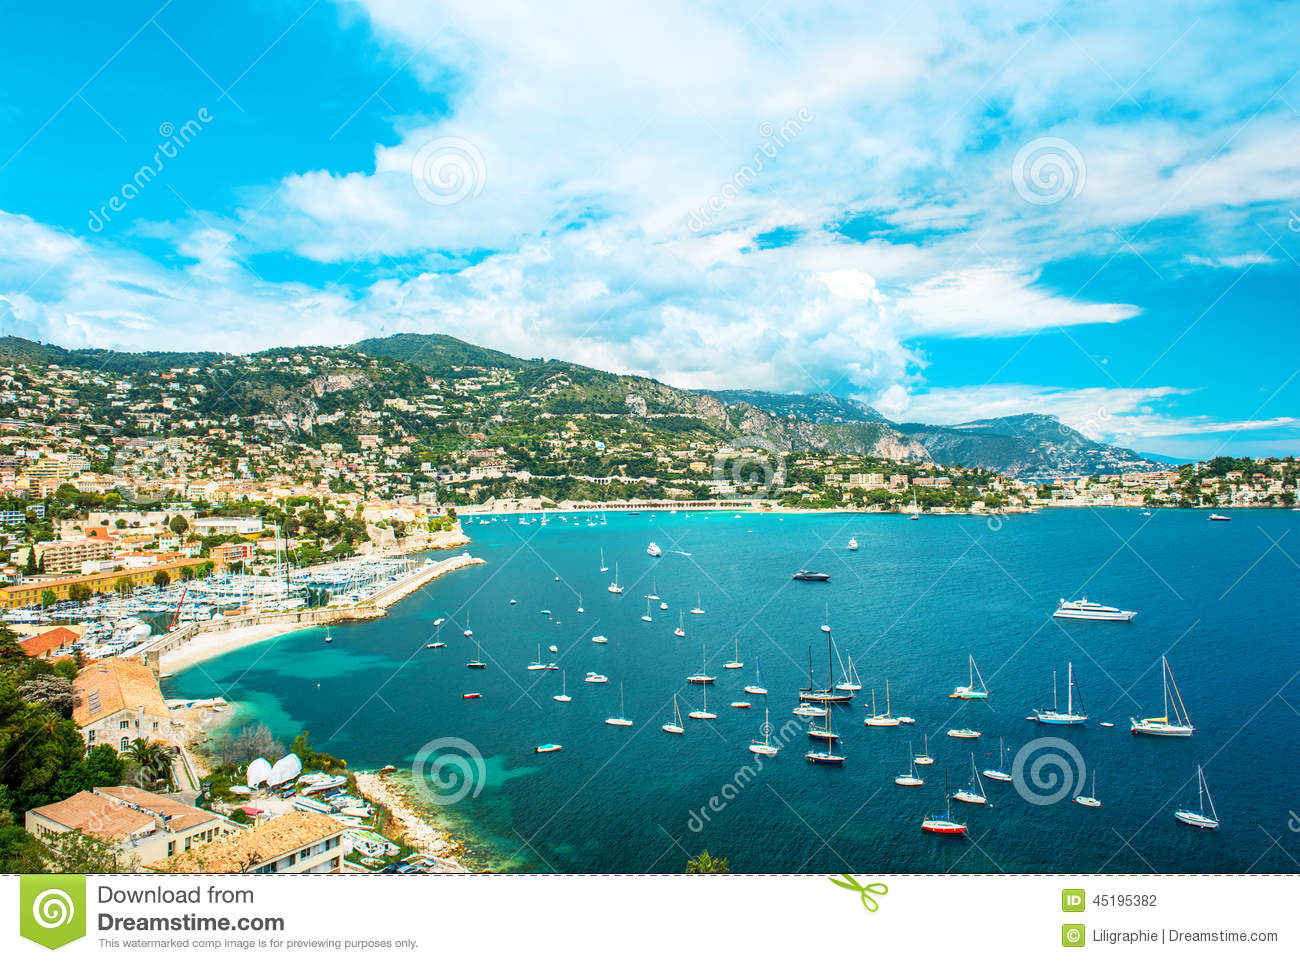 Map of the French Riviera (Côte d'Azur) - Vacation Like a Pro